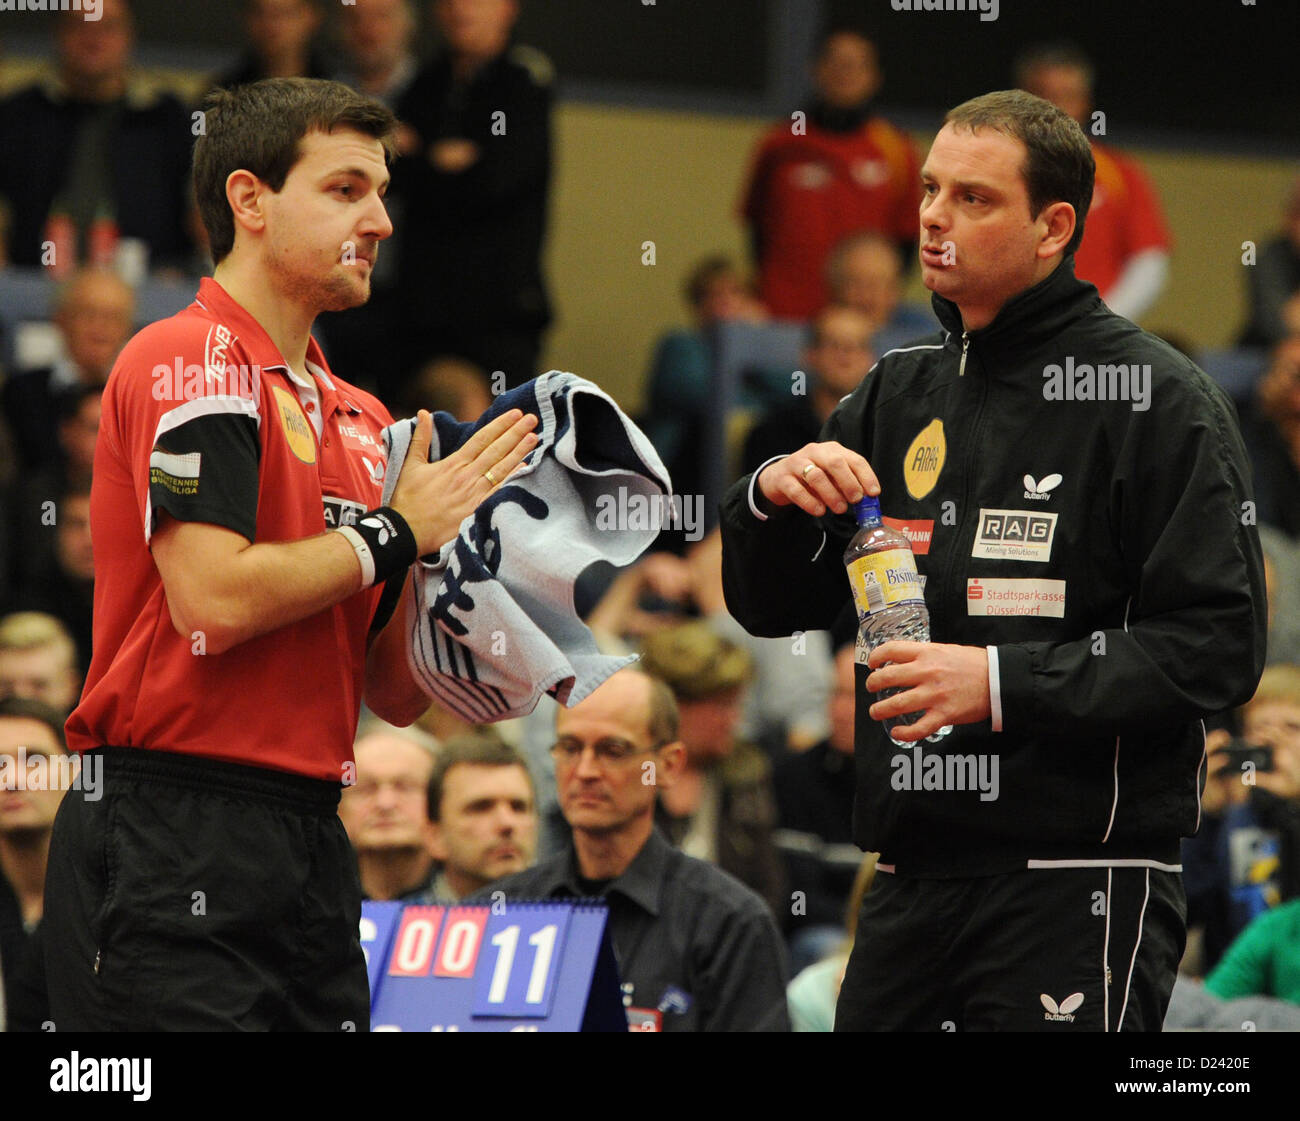 Duesseldorf's TimoBoll (L) talks to his coach Danny Heister during the men's German Bundesliga table - Stock Image